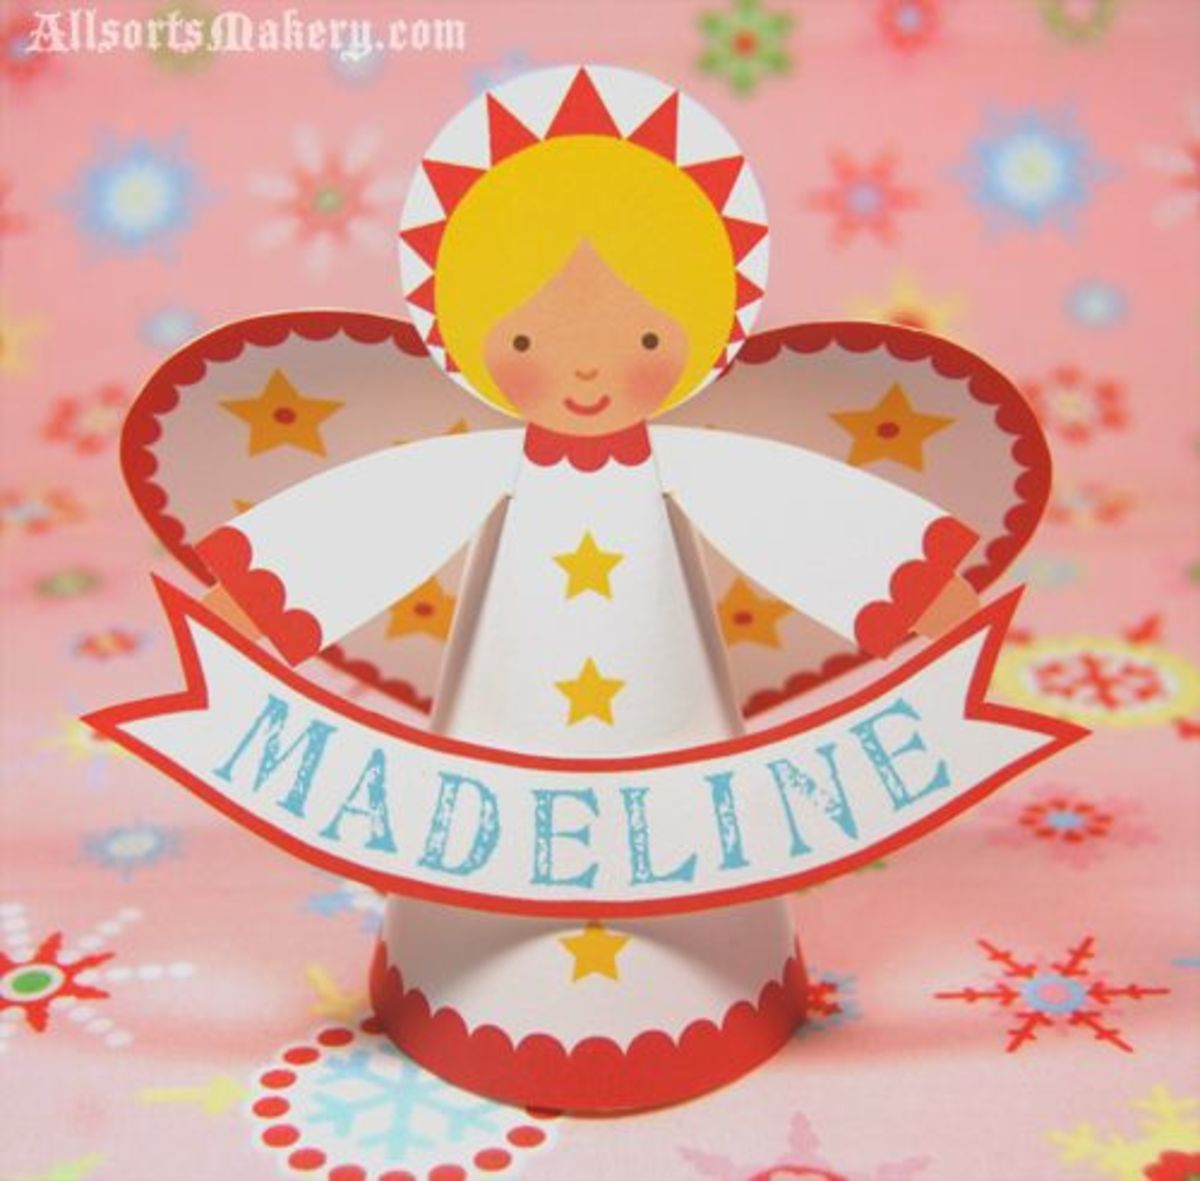 You can find the template you need to print out this cute little Angel at allsorts.typepad.com.